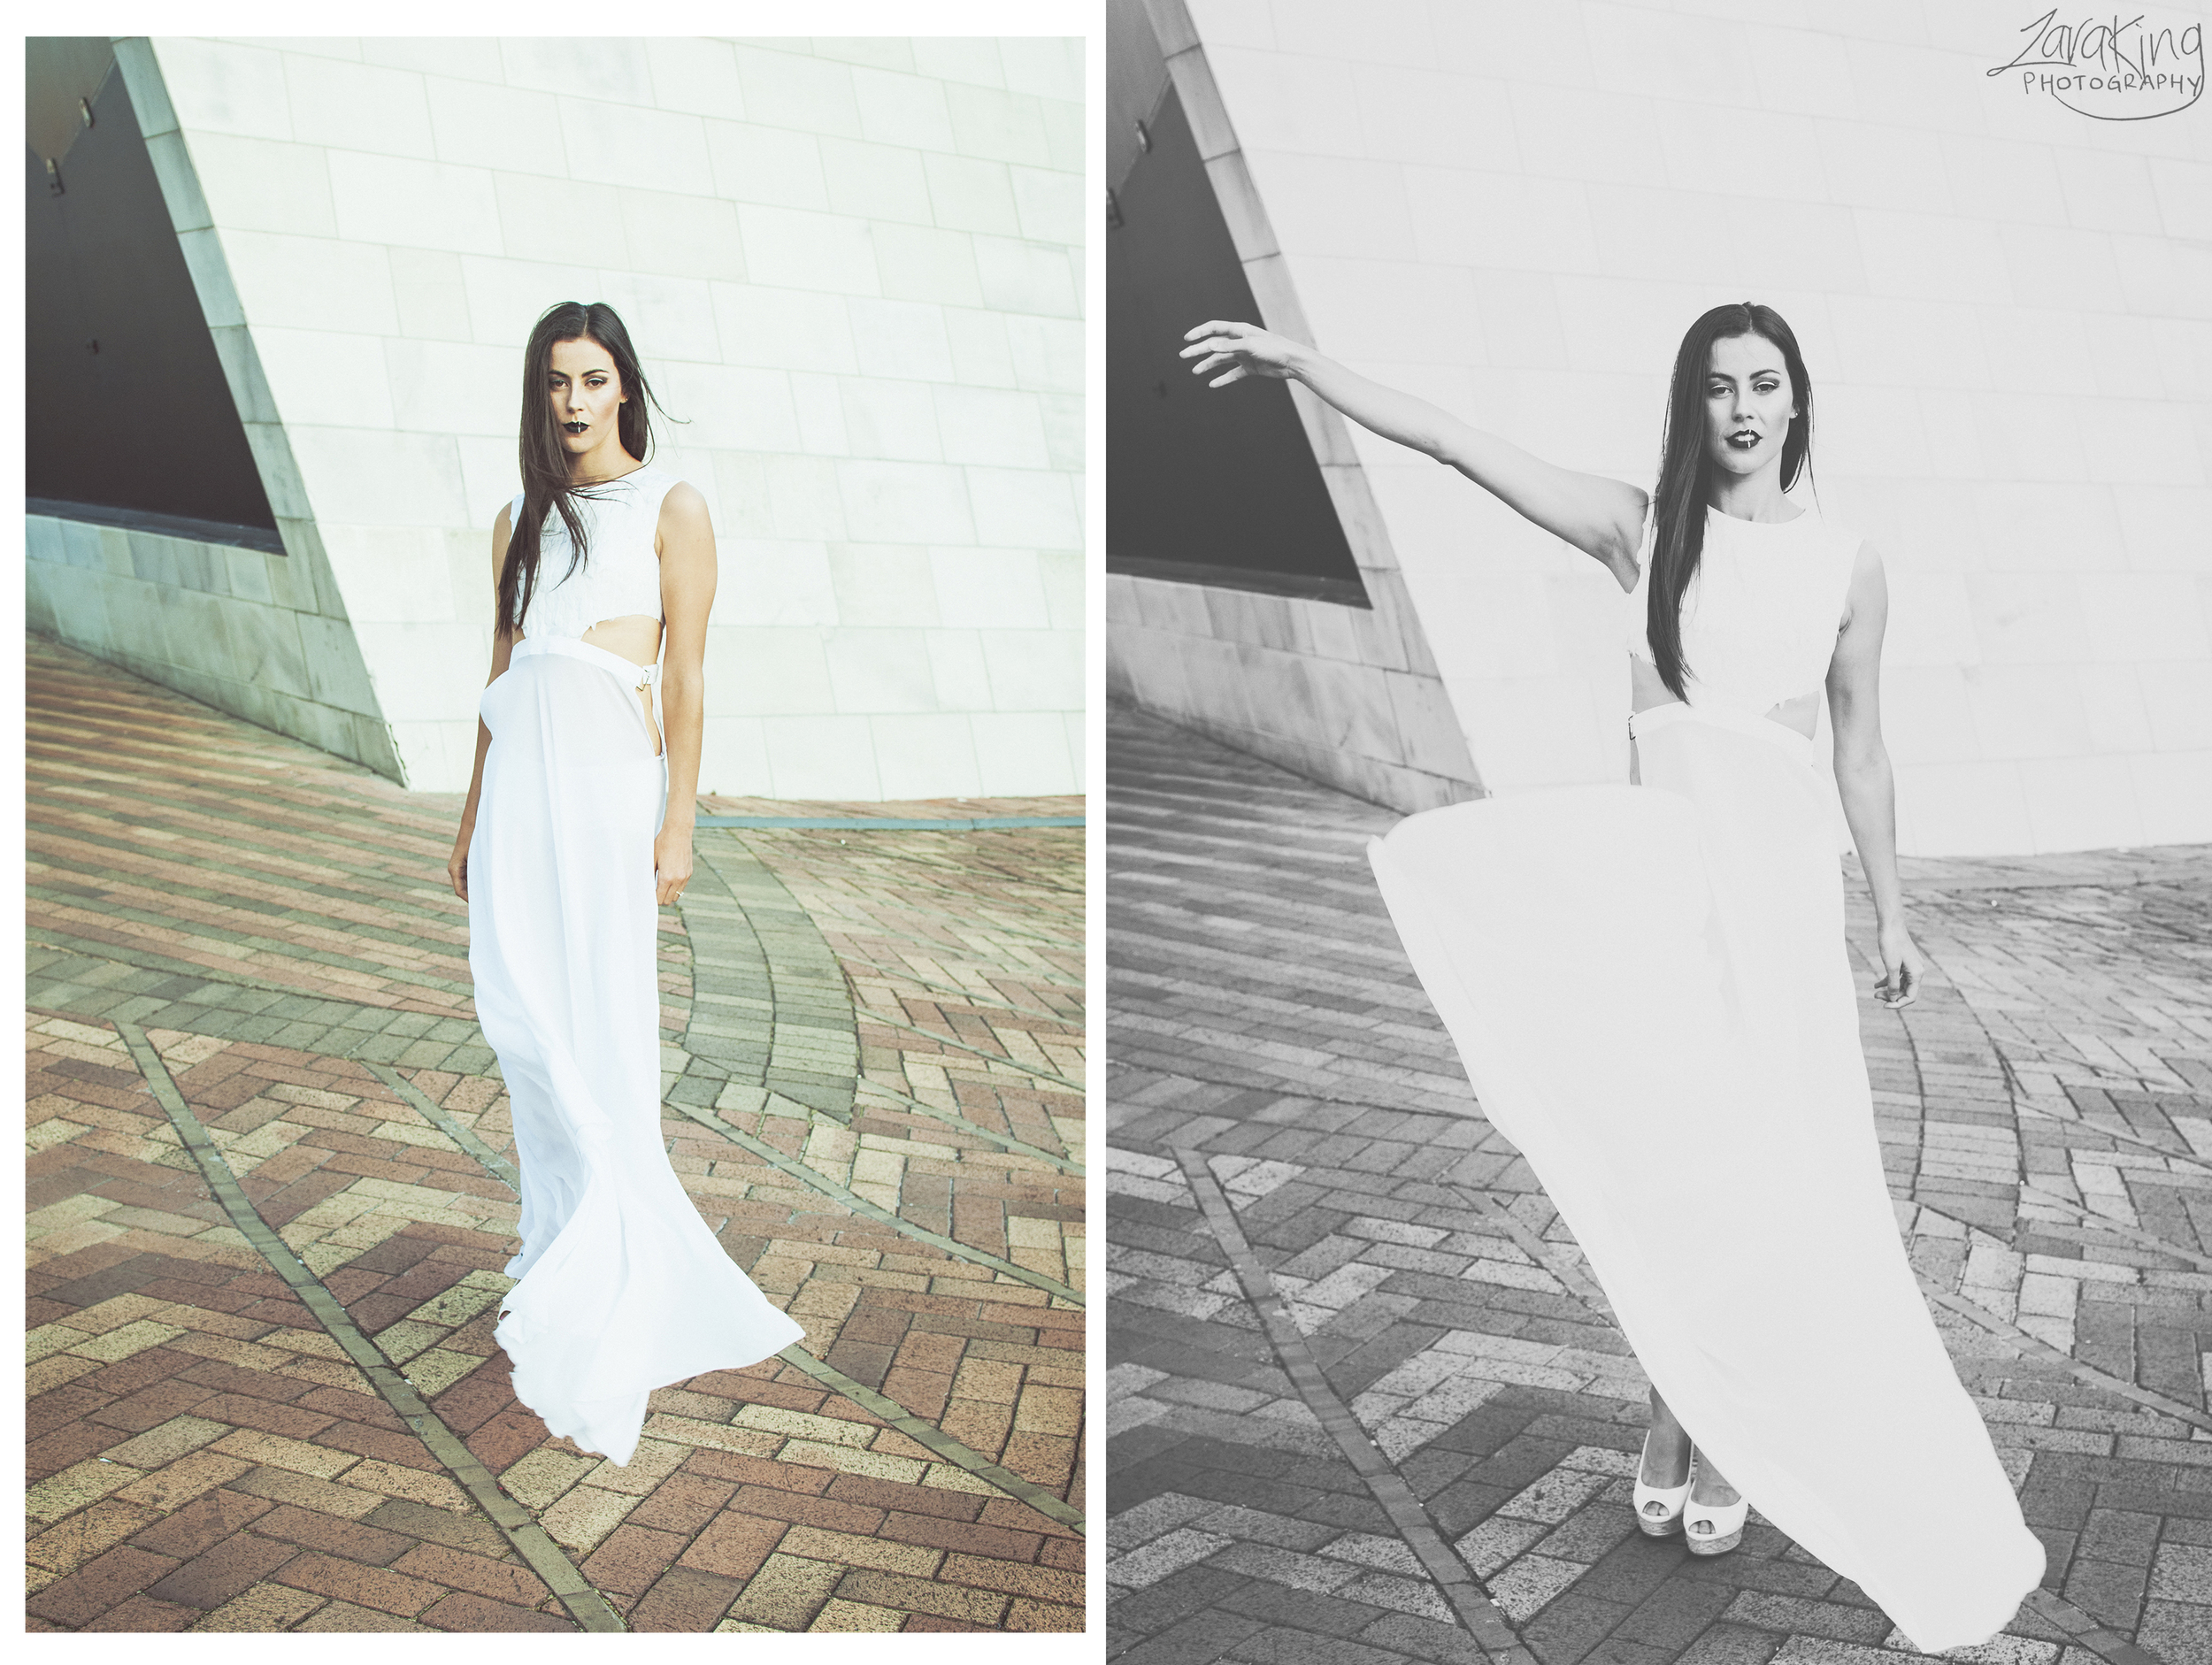 Zara King Photography | Blog entry | fashion campaign editorial photo shoot of Deborah Lambie for Ally Butler Designs